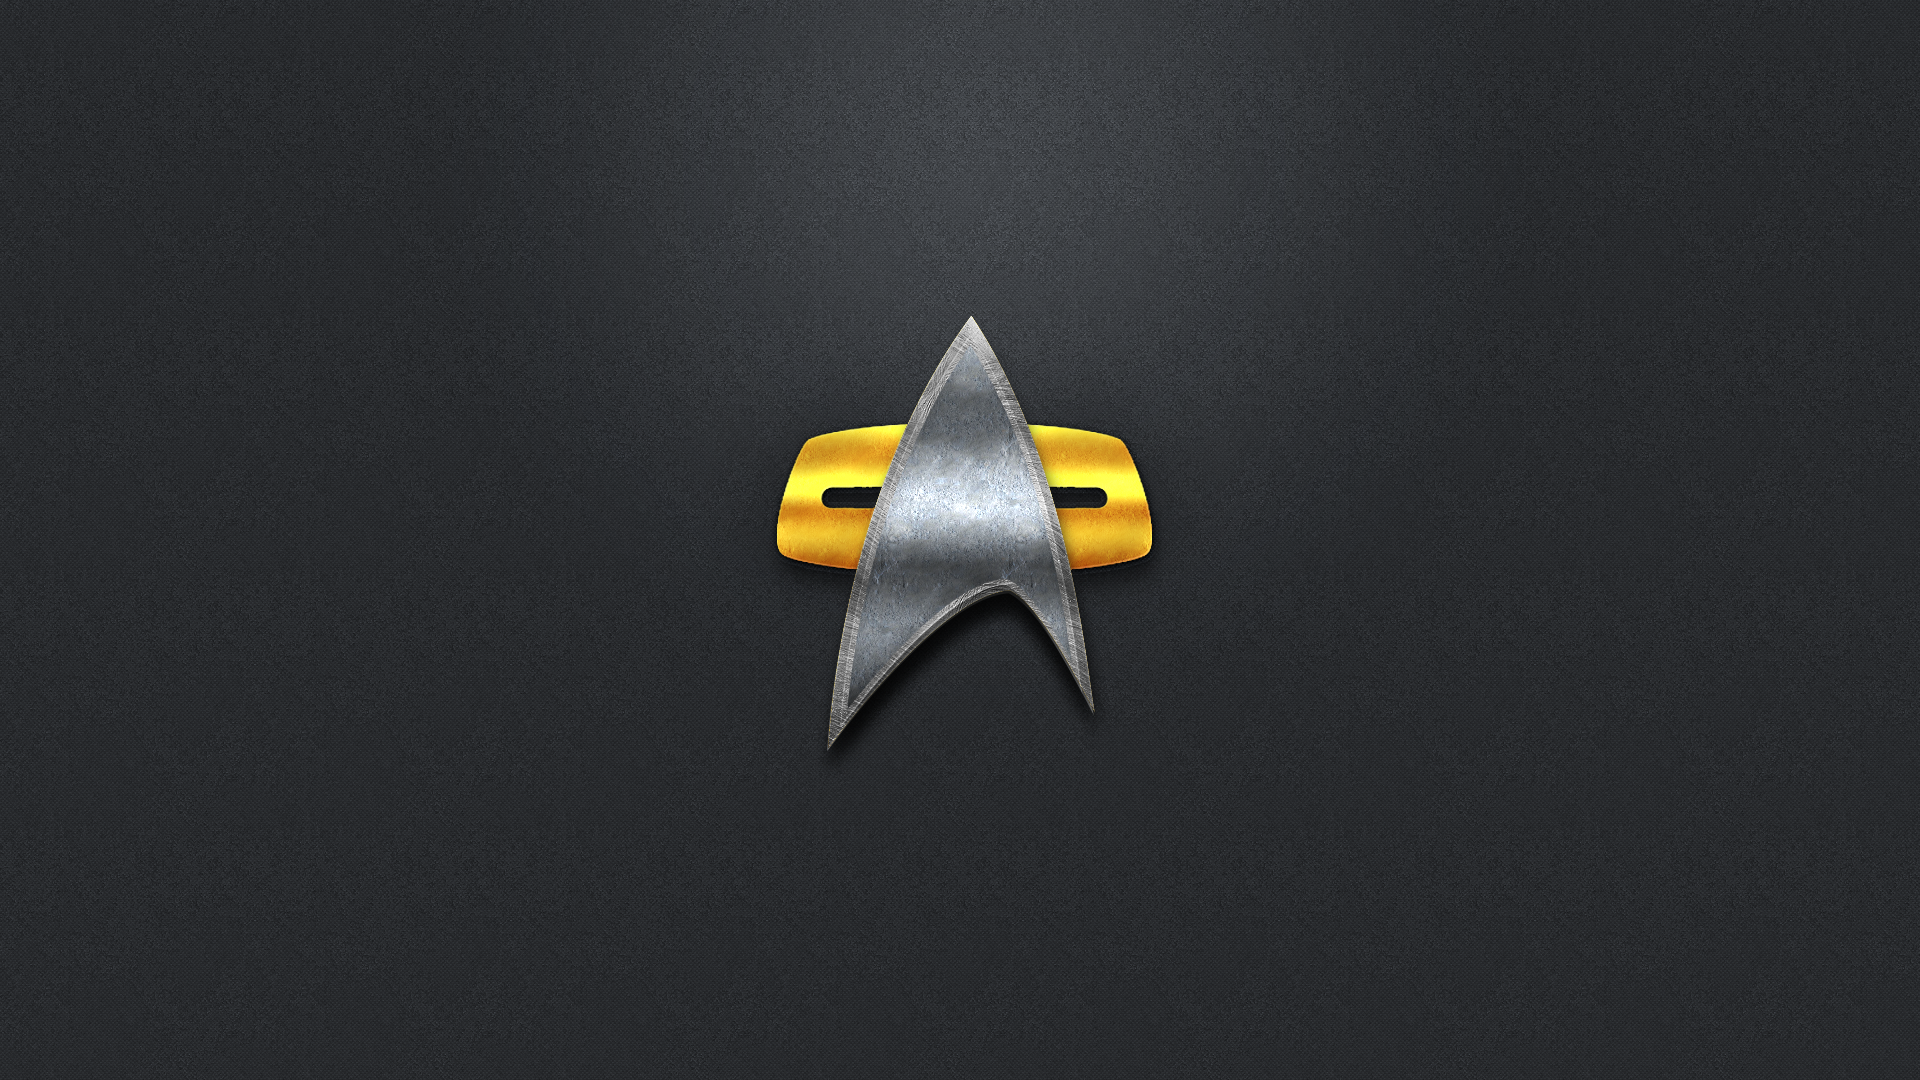 Free Download Star Trek Logo Wallpapers Wallpaper Star Trek